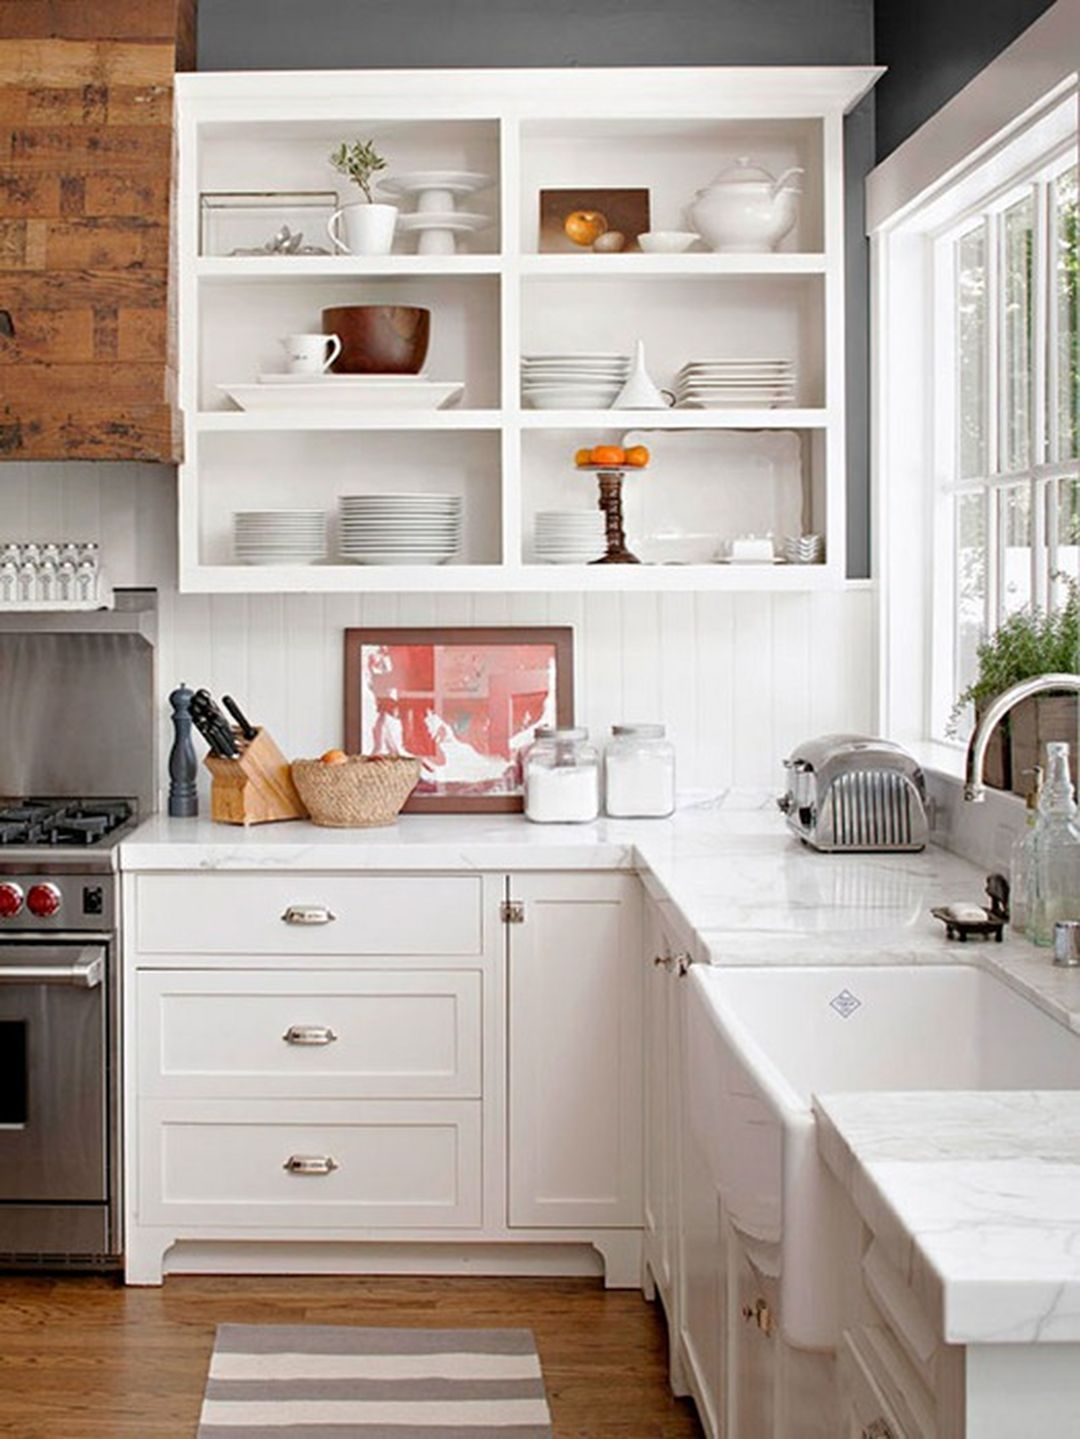 Open Kitchen Cabinets With Shelves Goodsgn In 2020 Open Kitchen Cabinets New Kitchen Cabinets Kitchen Renovation